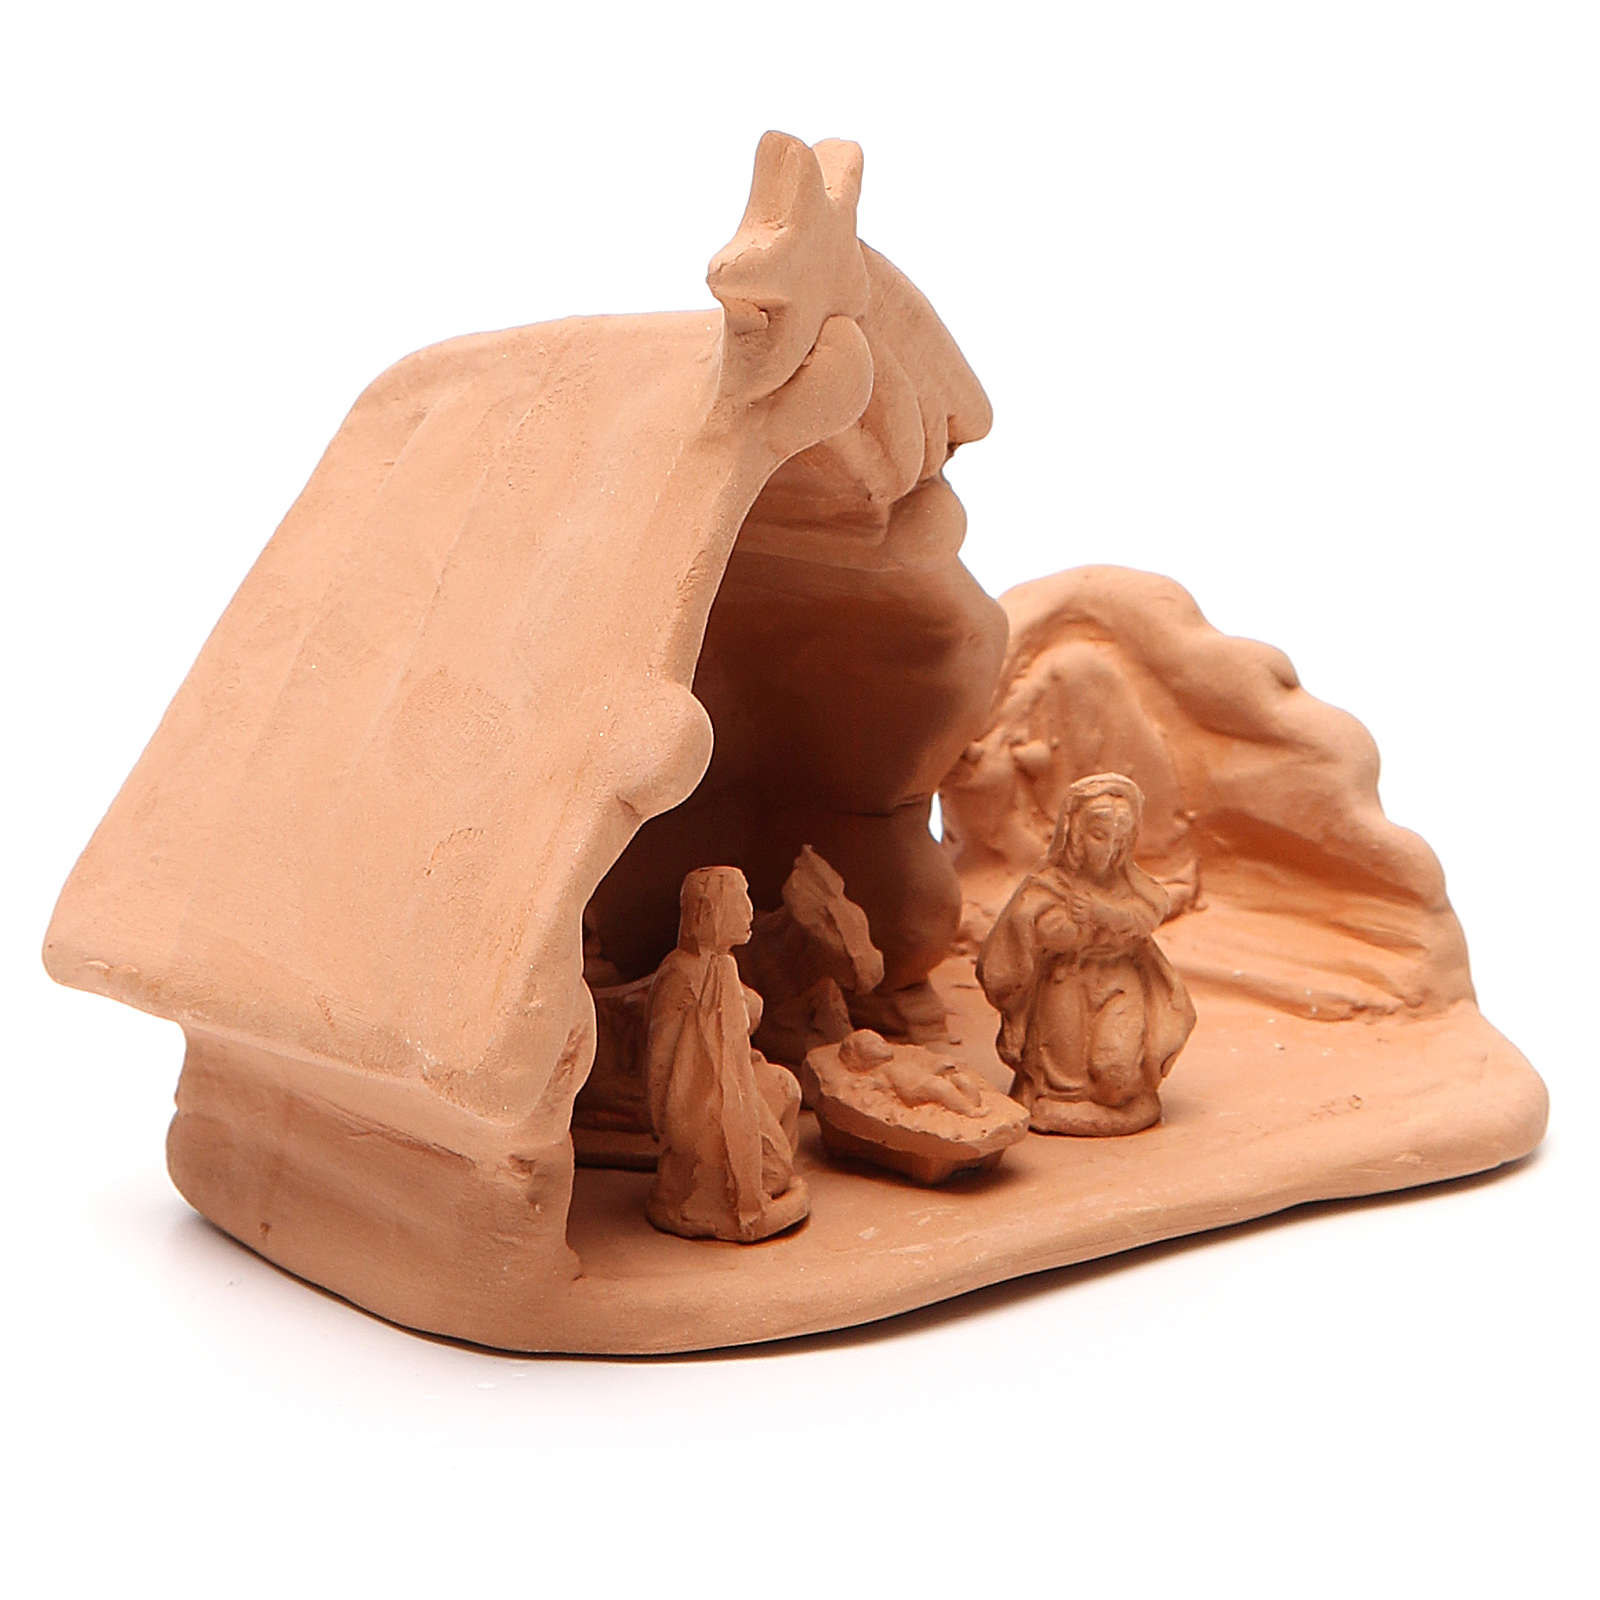 Natività e casolare terracotta 11x12x7 cm 4